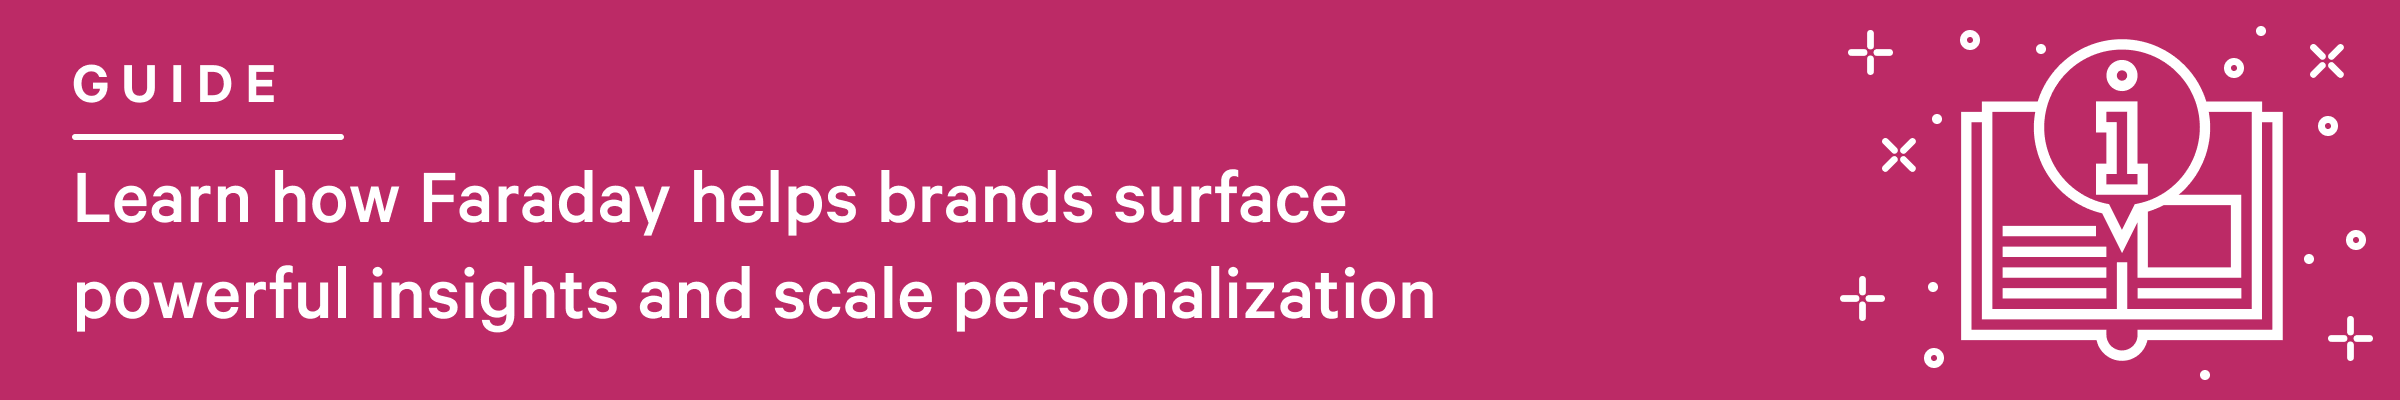 Learn how Faraday helps brands surface powerful insights and scale personalization